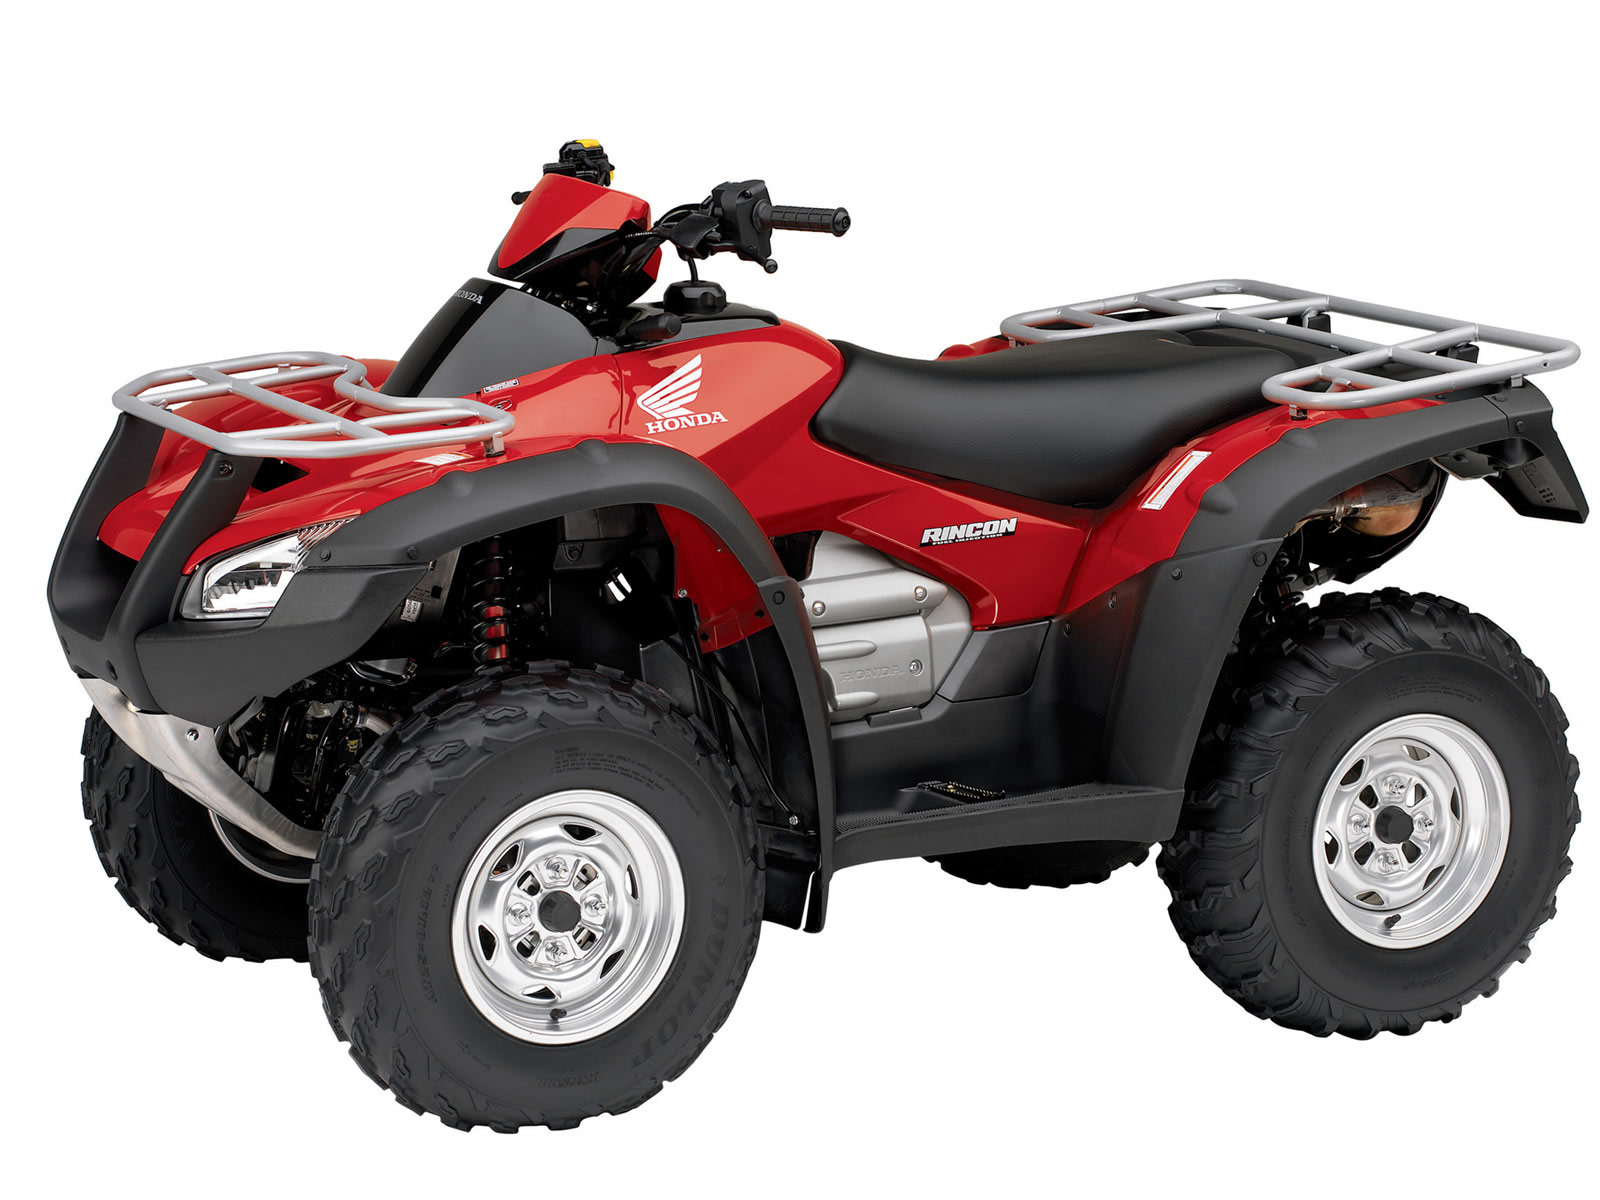 2006 honda fourtrax rincon atv wallpapers. Black Bedroom Furniture Sets. Home Design Ideas